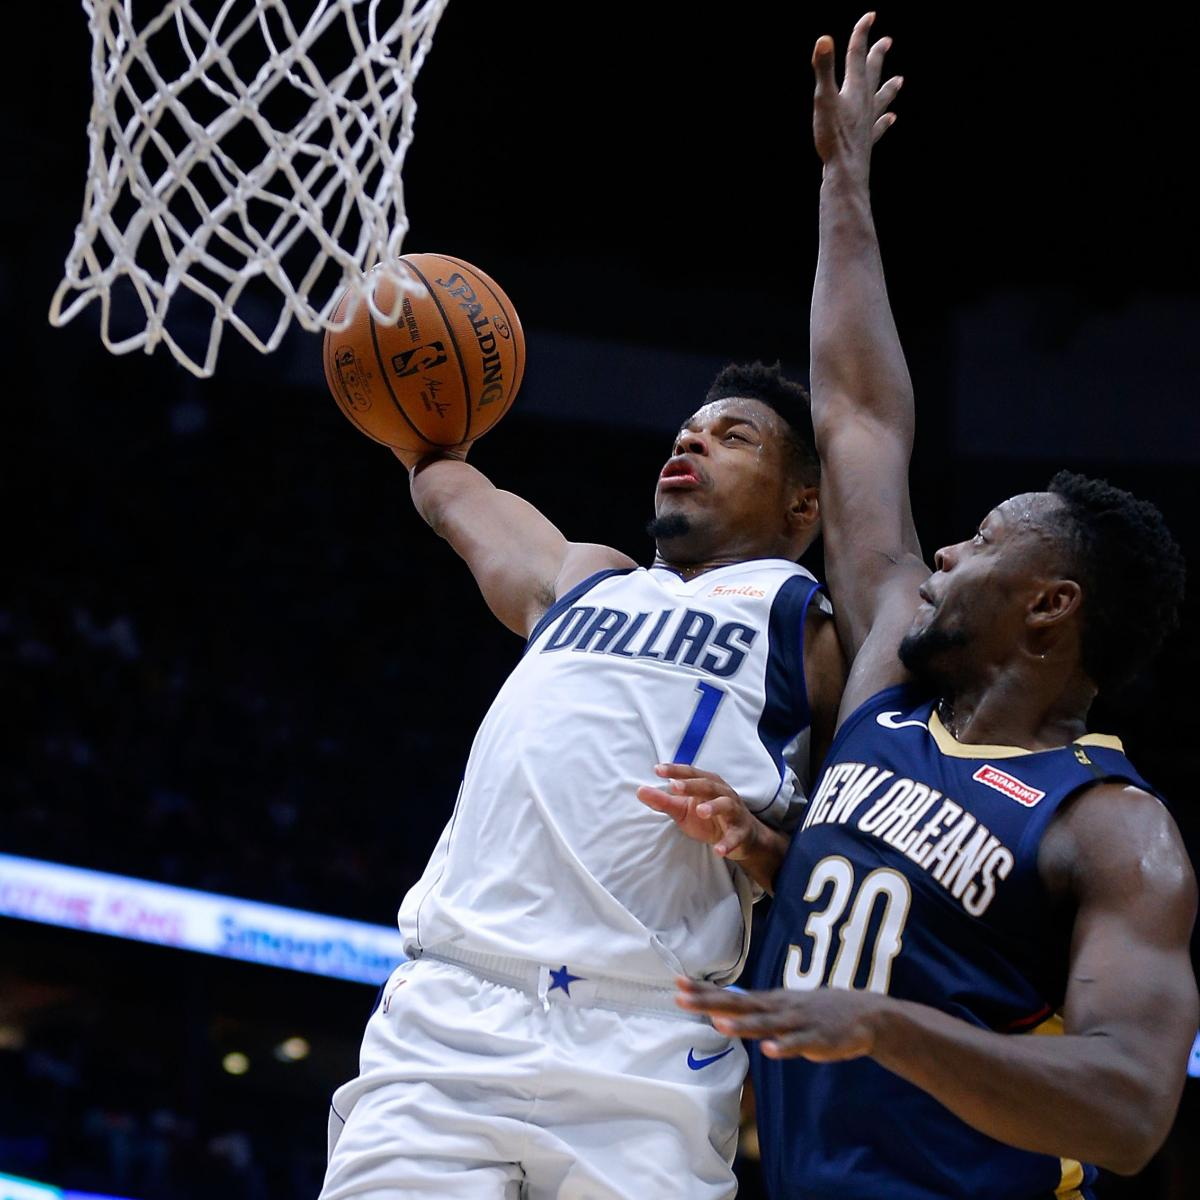 Dennis Smith Jr. Will Reportedly Participate In 2019 NBA